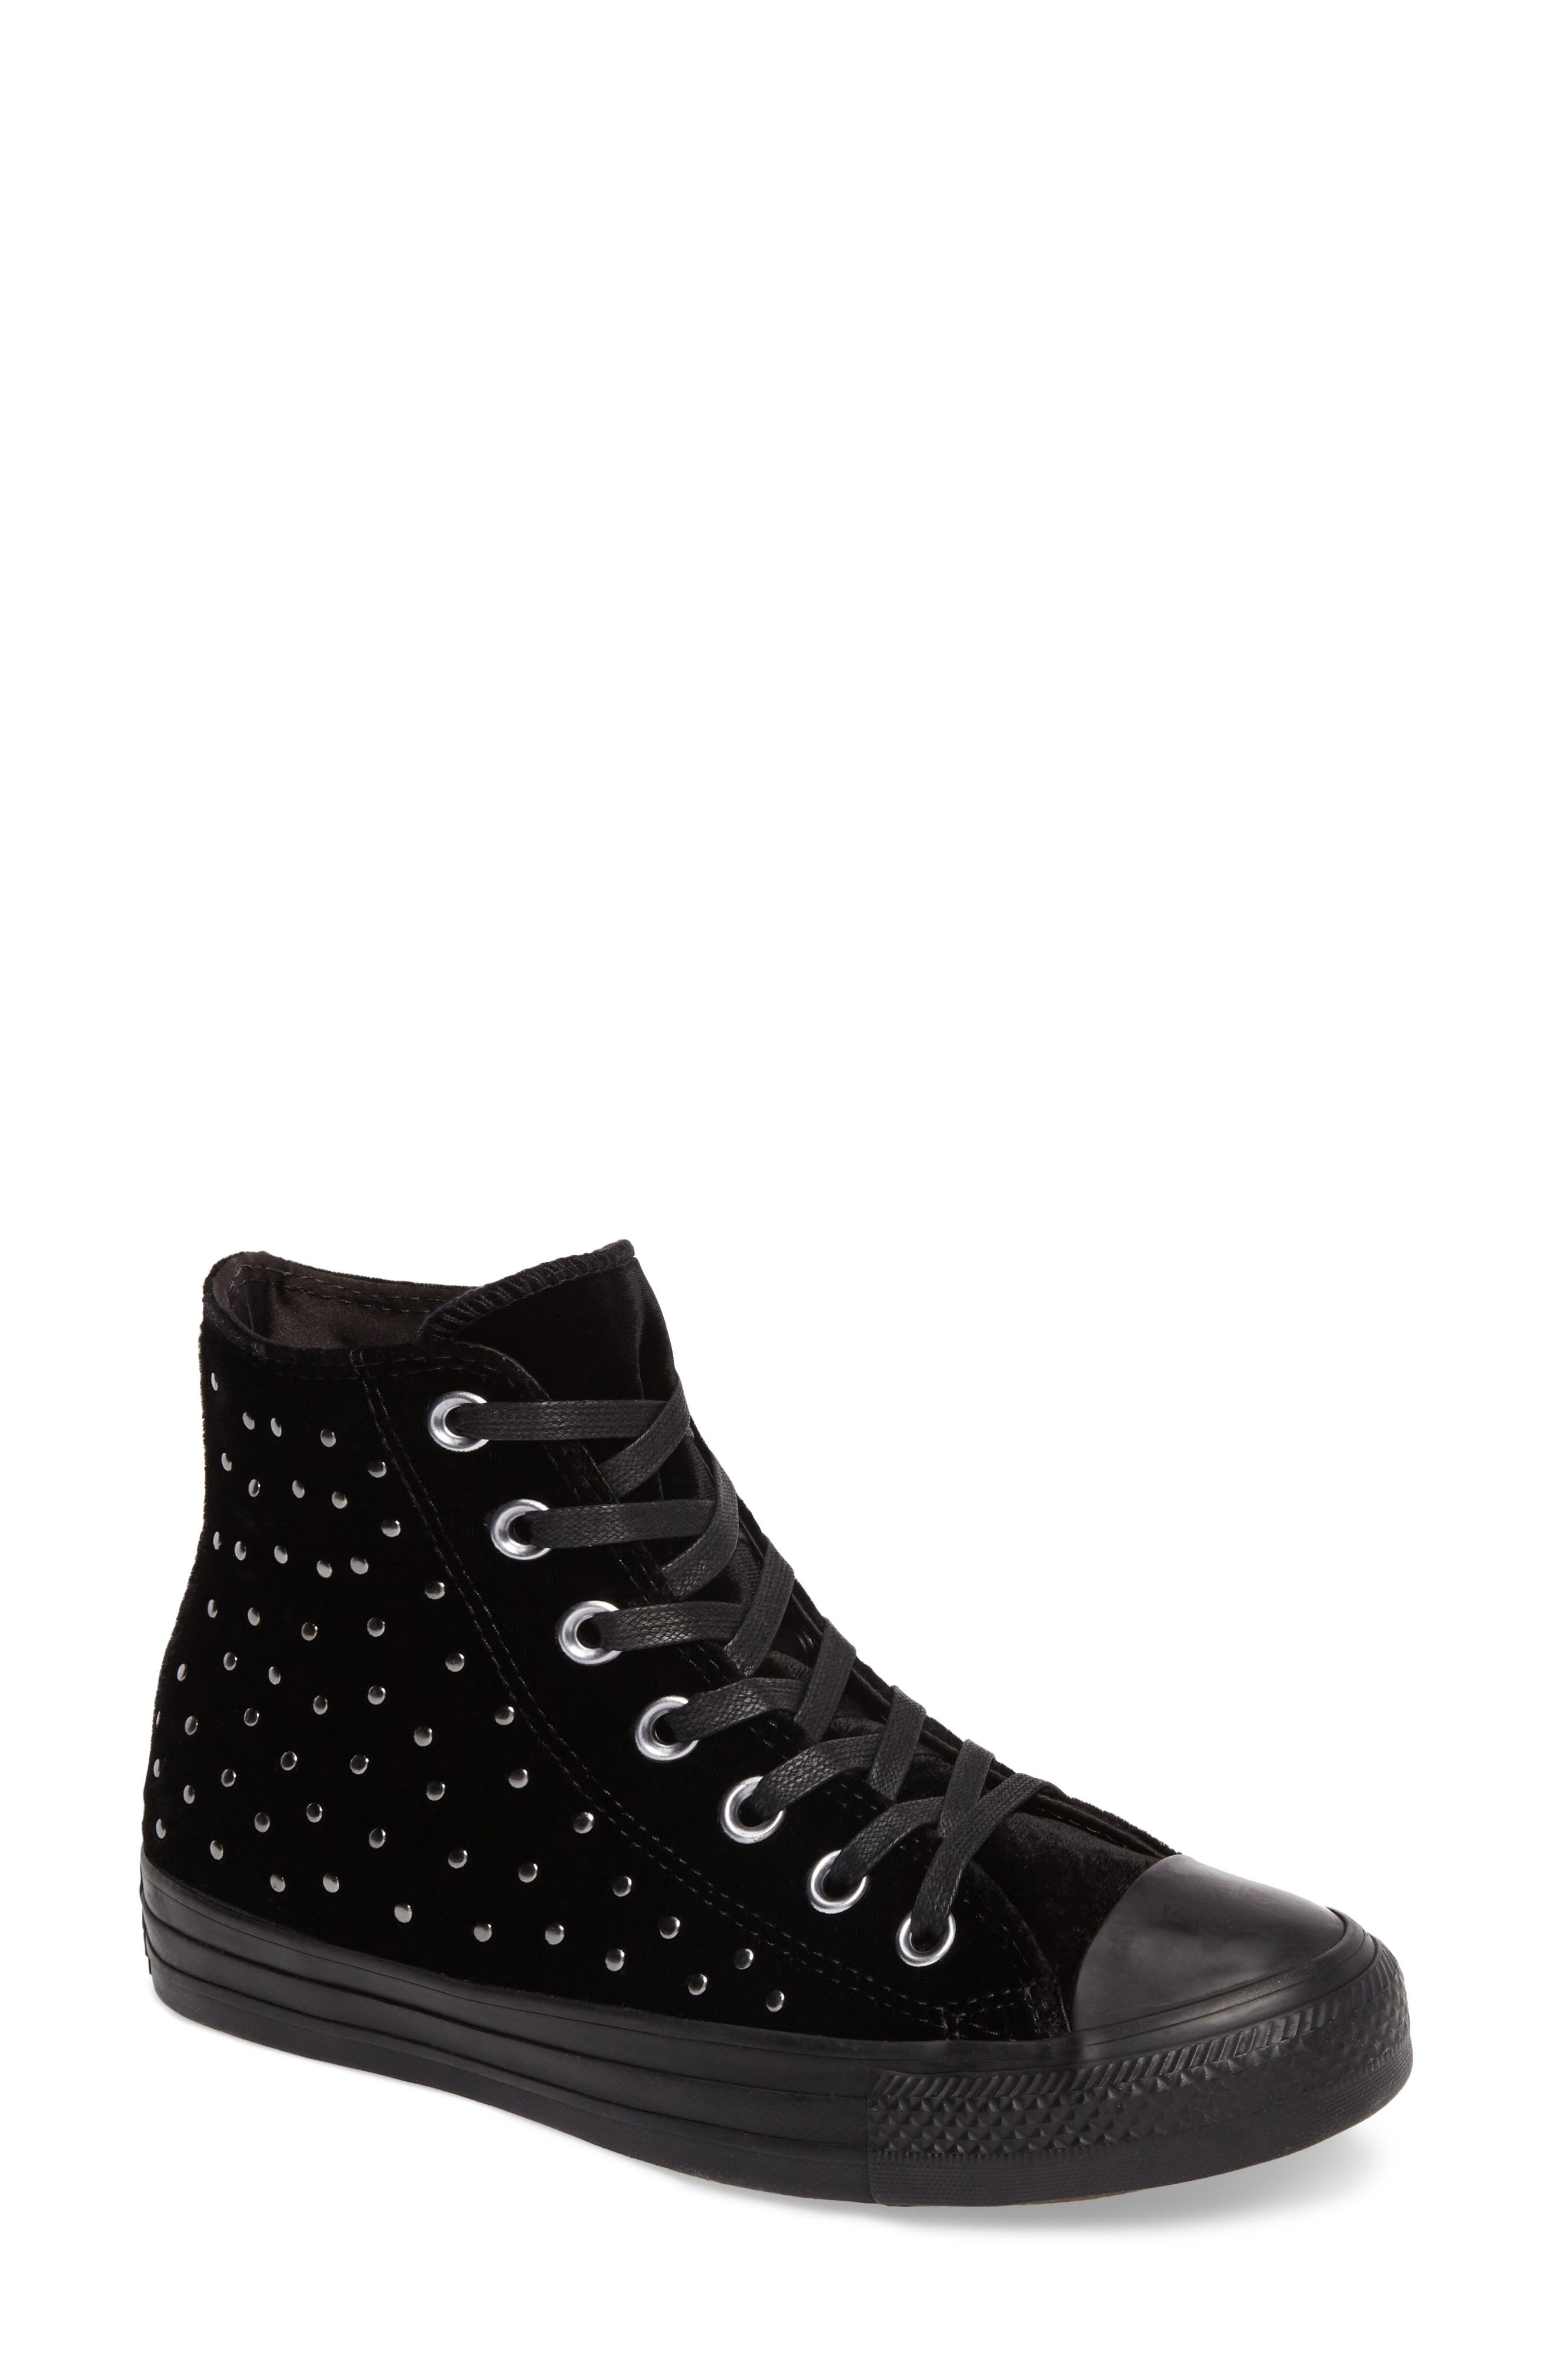 Chuck Taylor<sup>®</sup> All Star<sup>®</sup> Studded High Top Sneakers,                         Main,                         color, 001